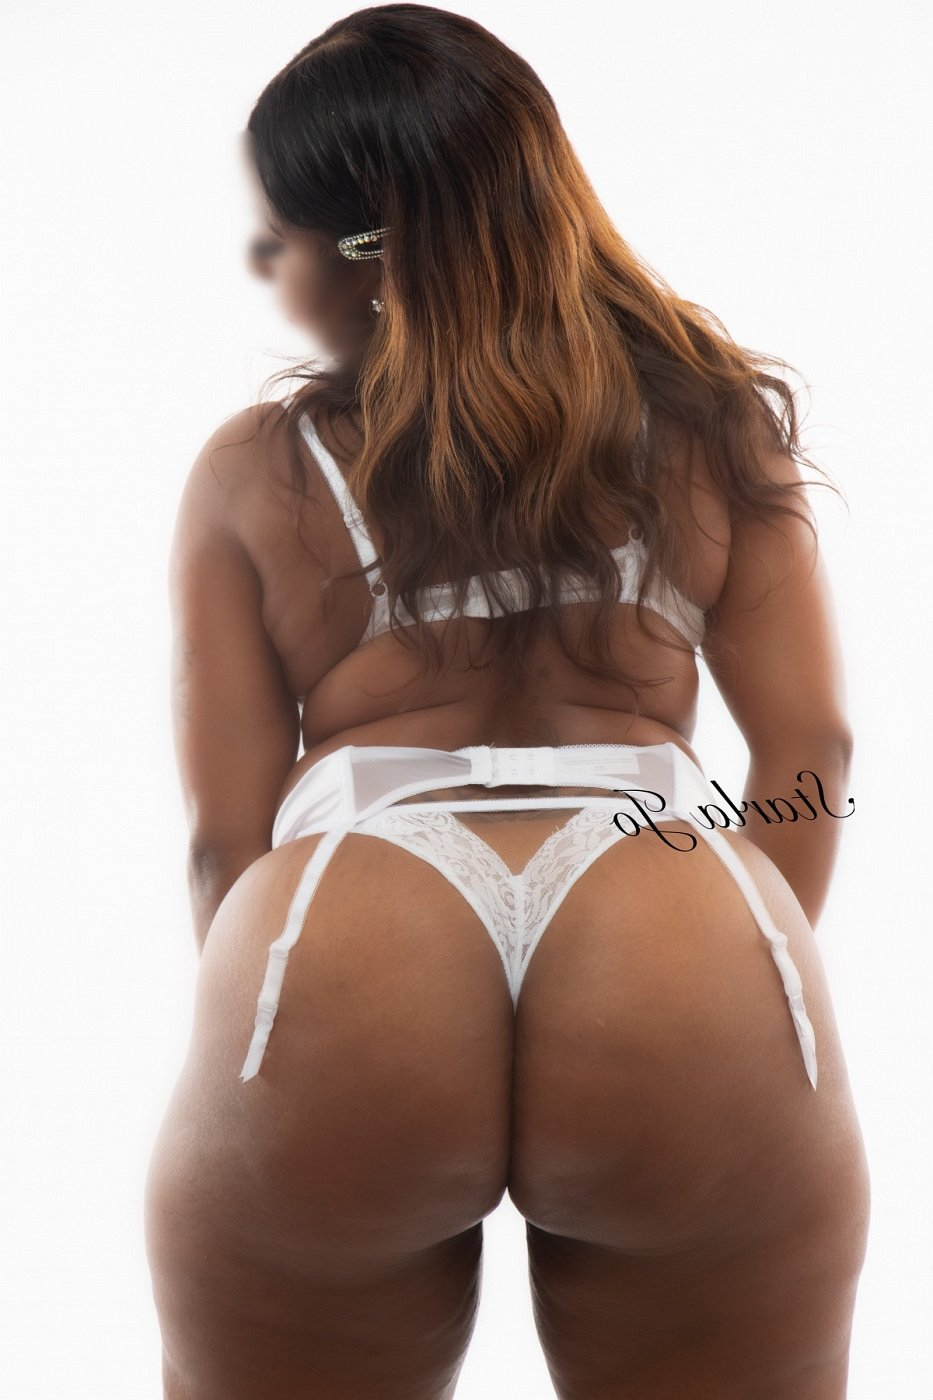 nuru massage in Fremont